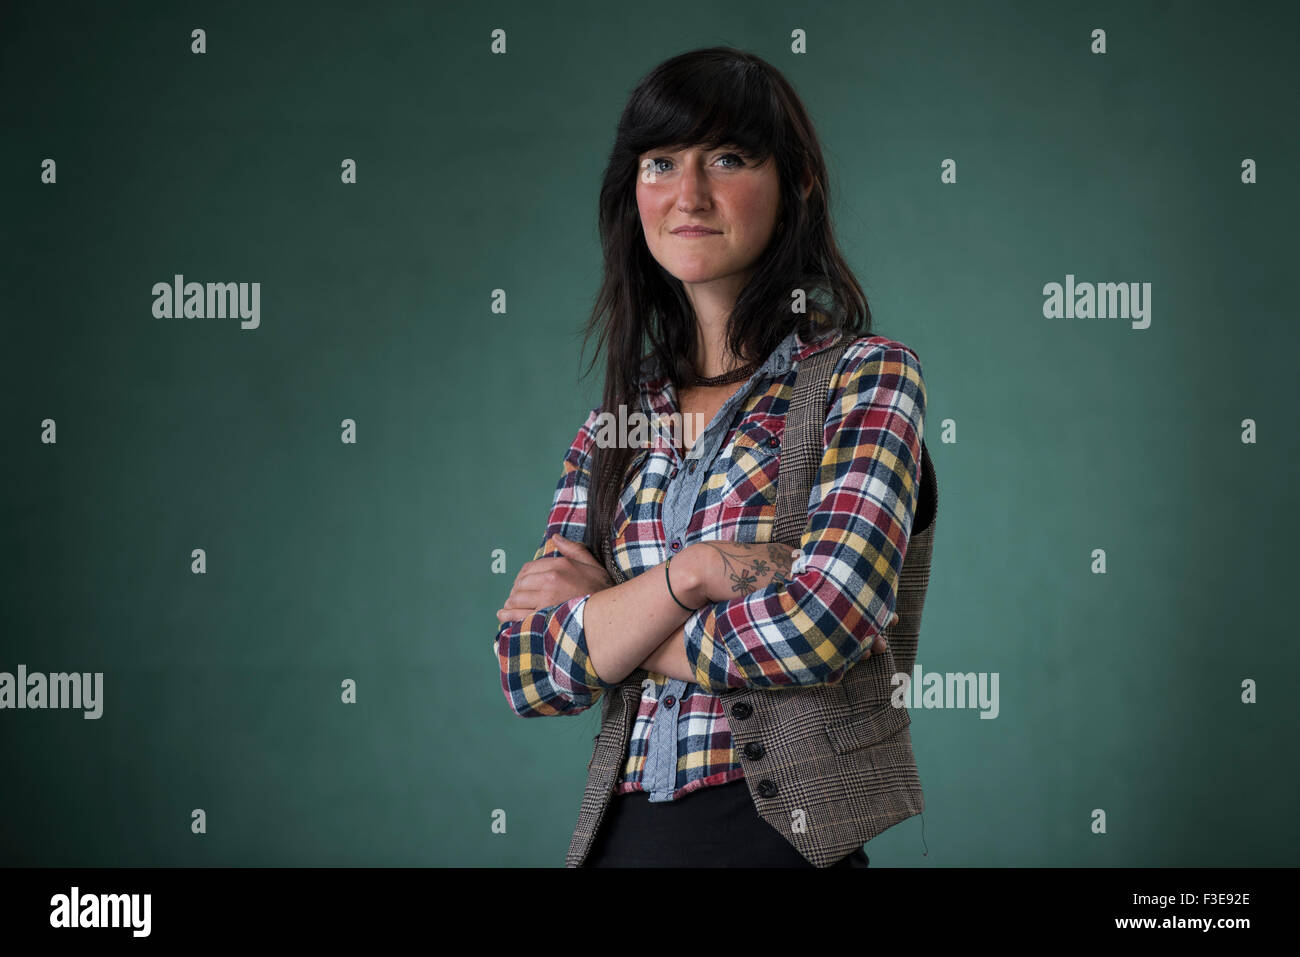 Irish writer Sara Baume. - Stock Image